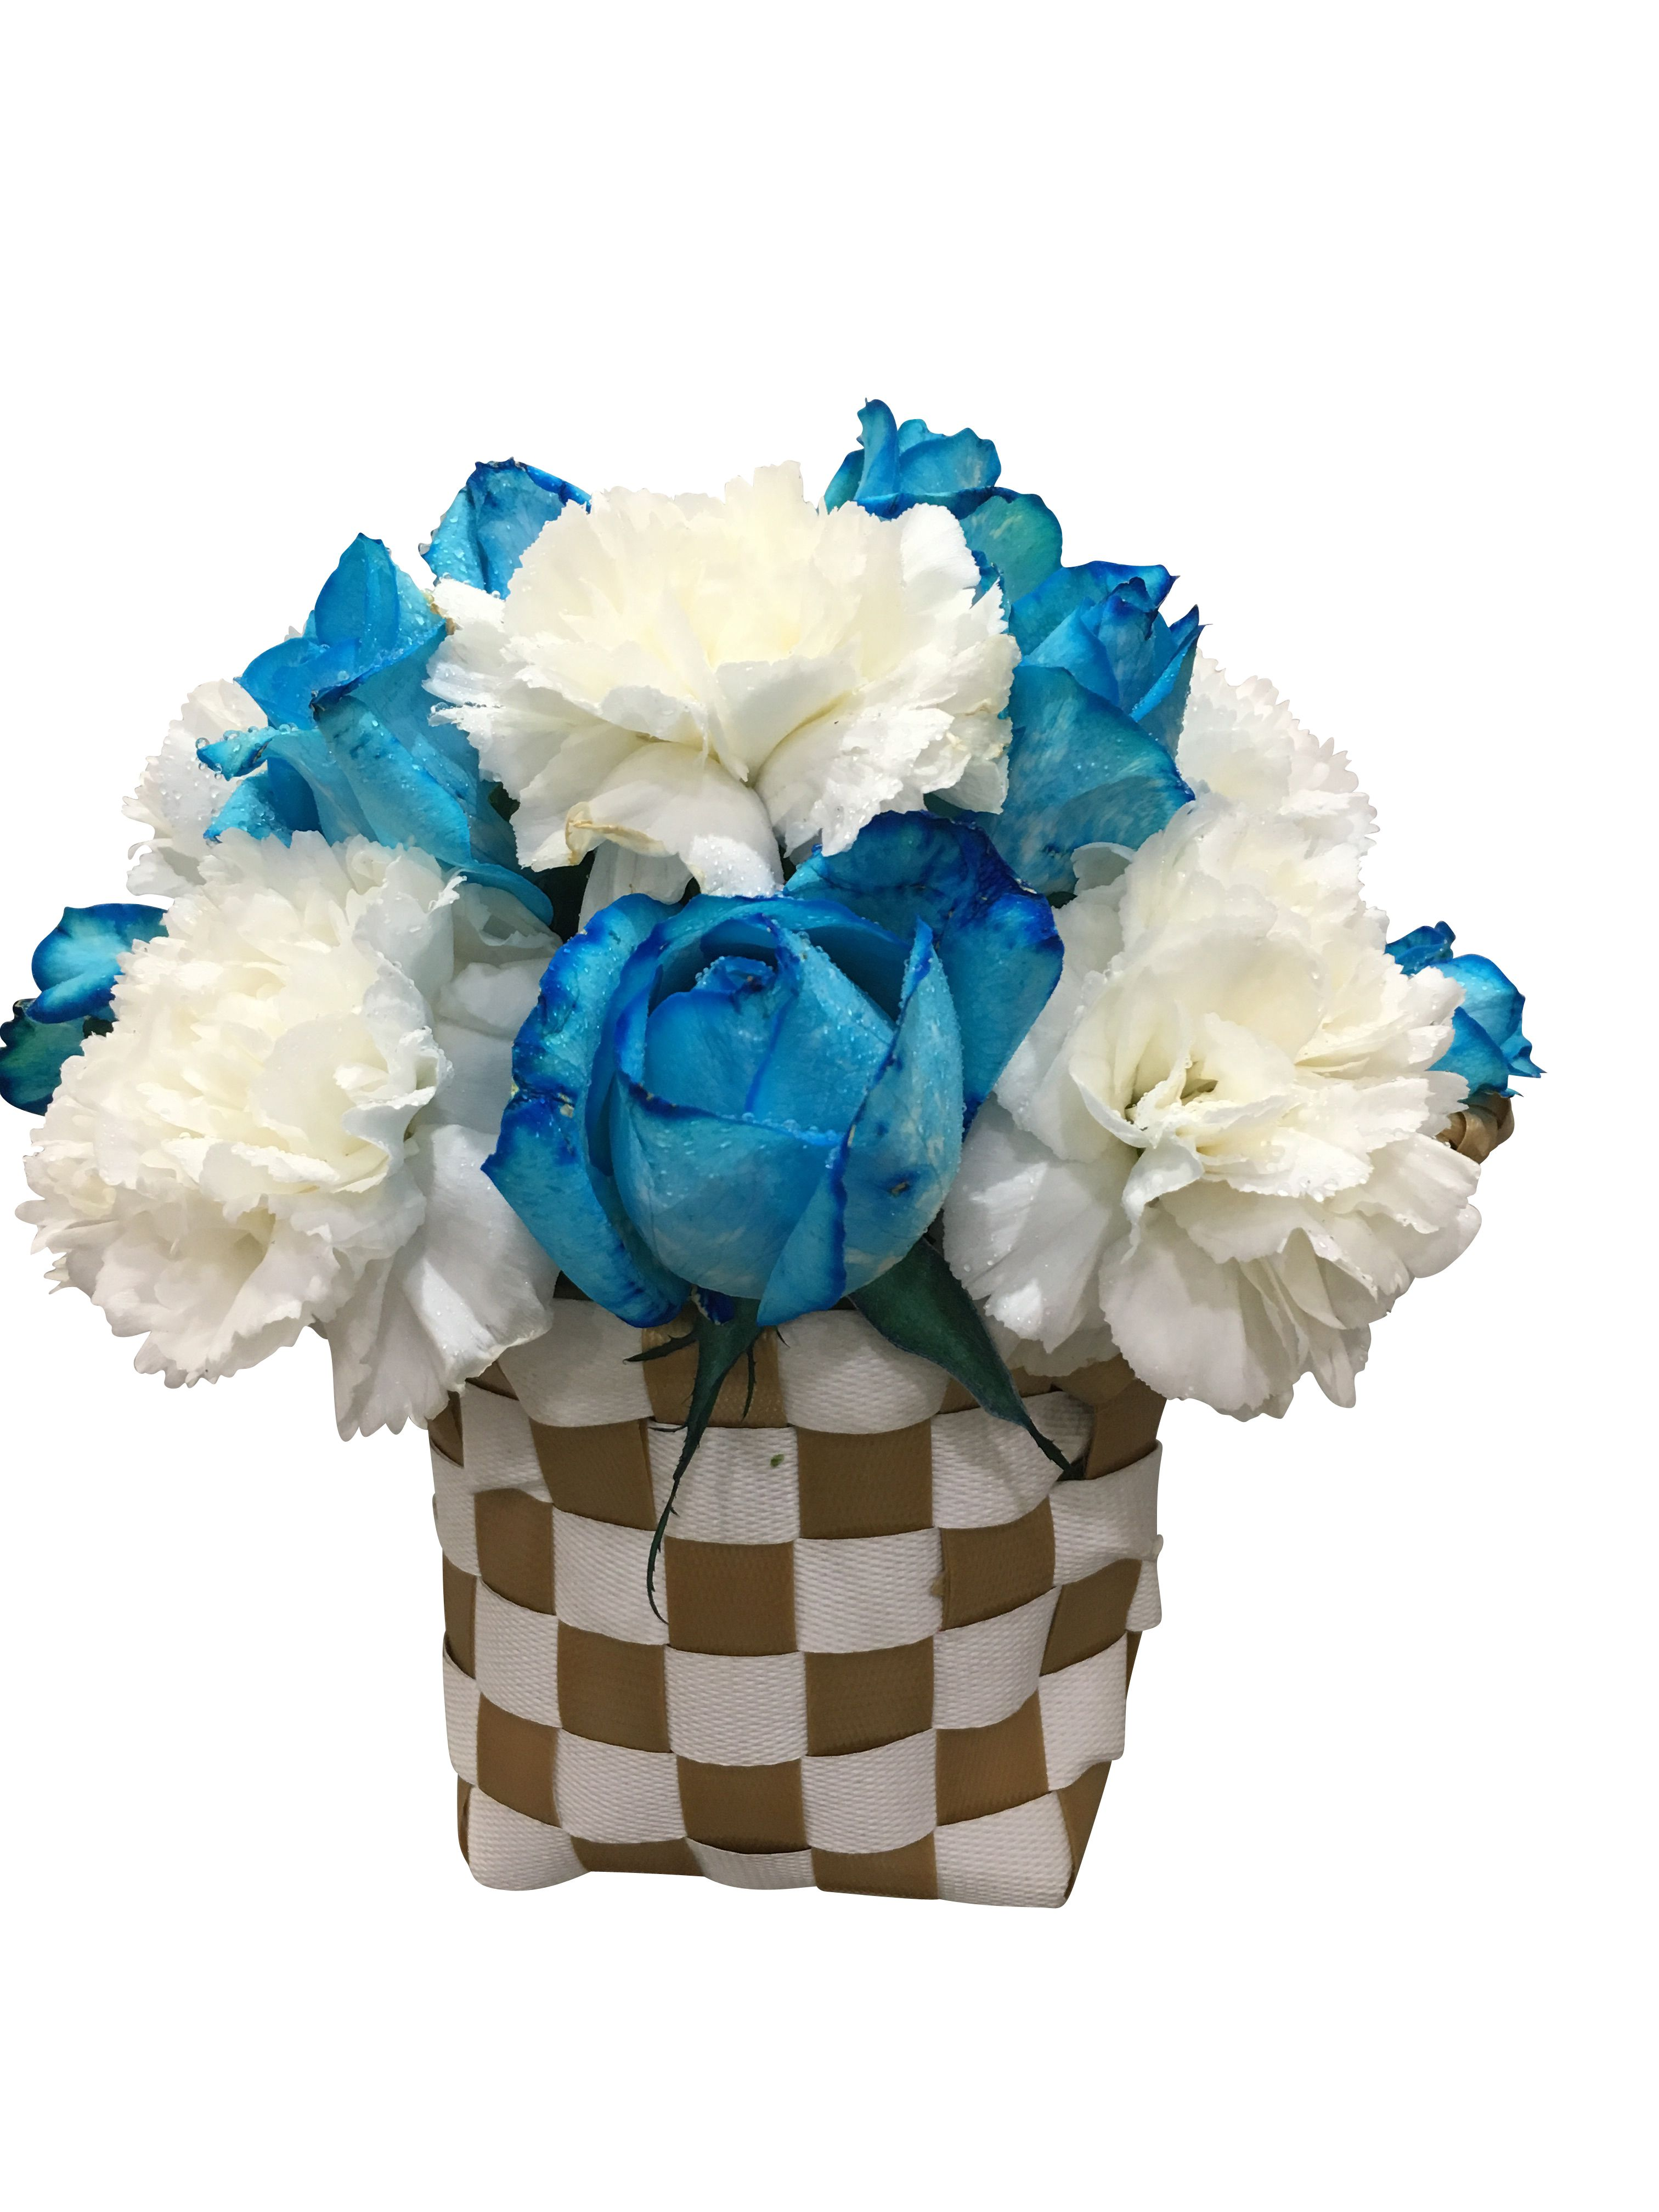 This Mixed Beauty Is Containing With White Carnation And Blue Roses